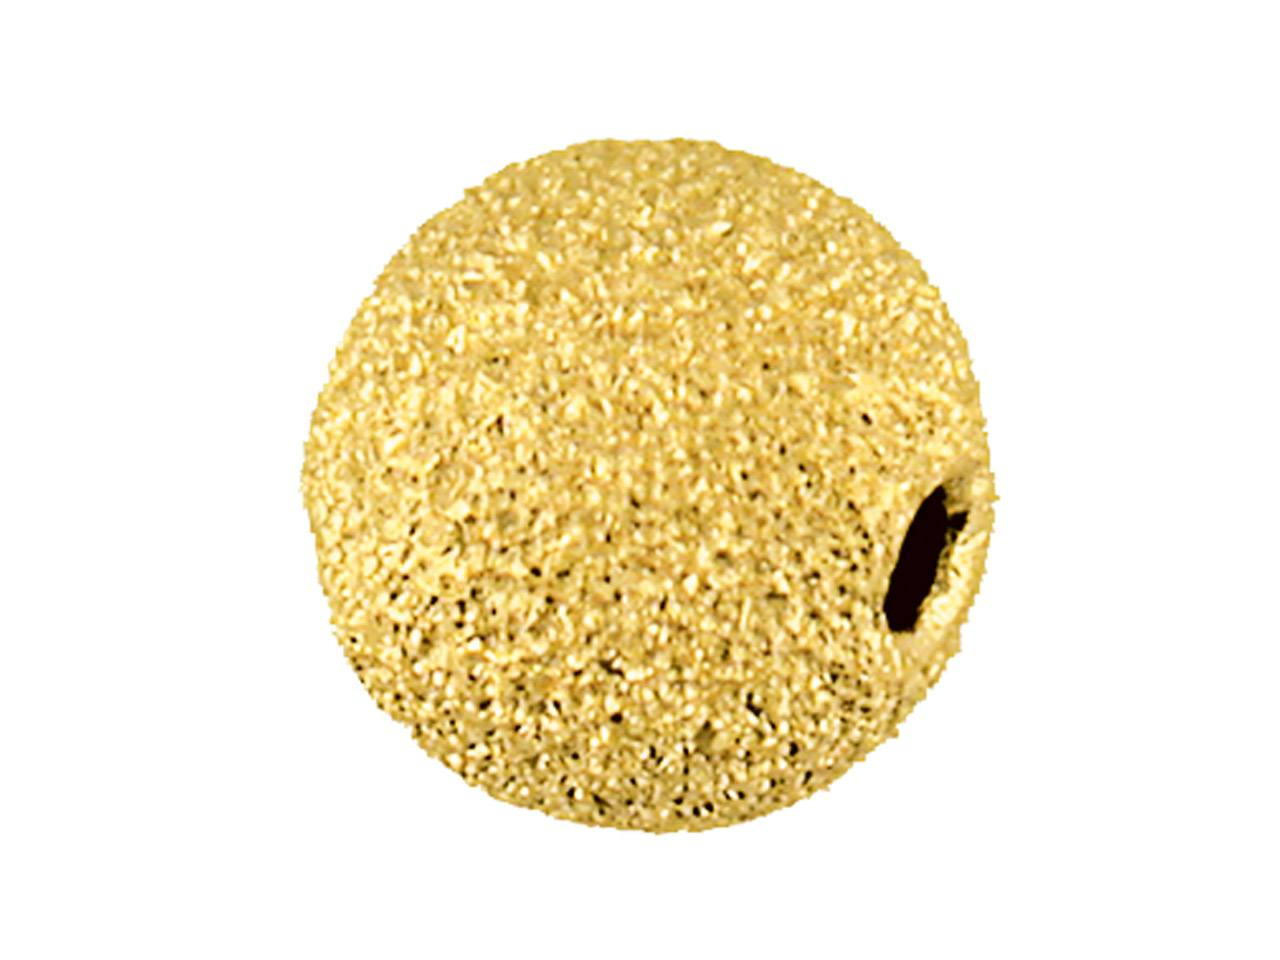 Boule laser 2 trous 4 mm, Or jaune 18k. Réf. 4746